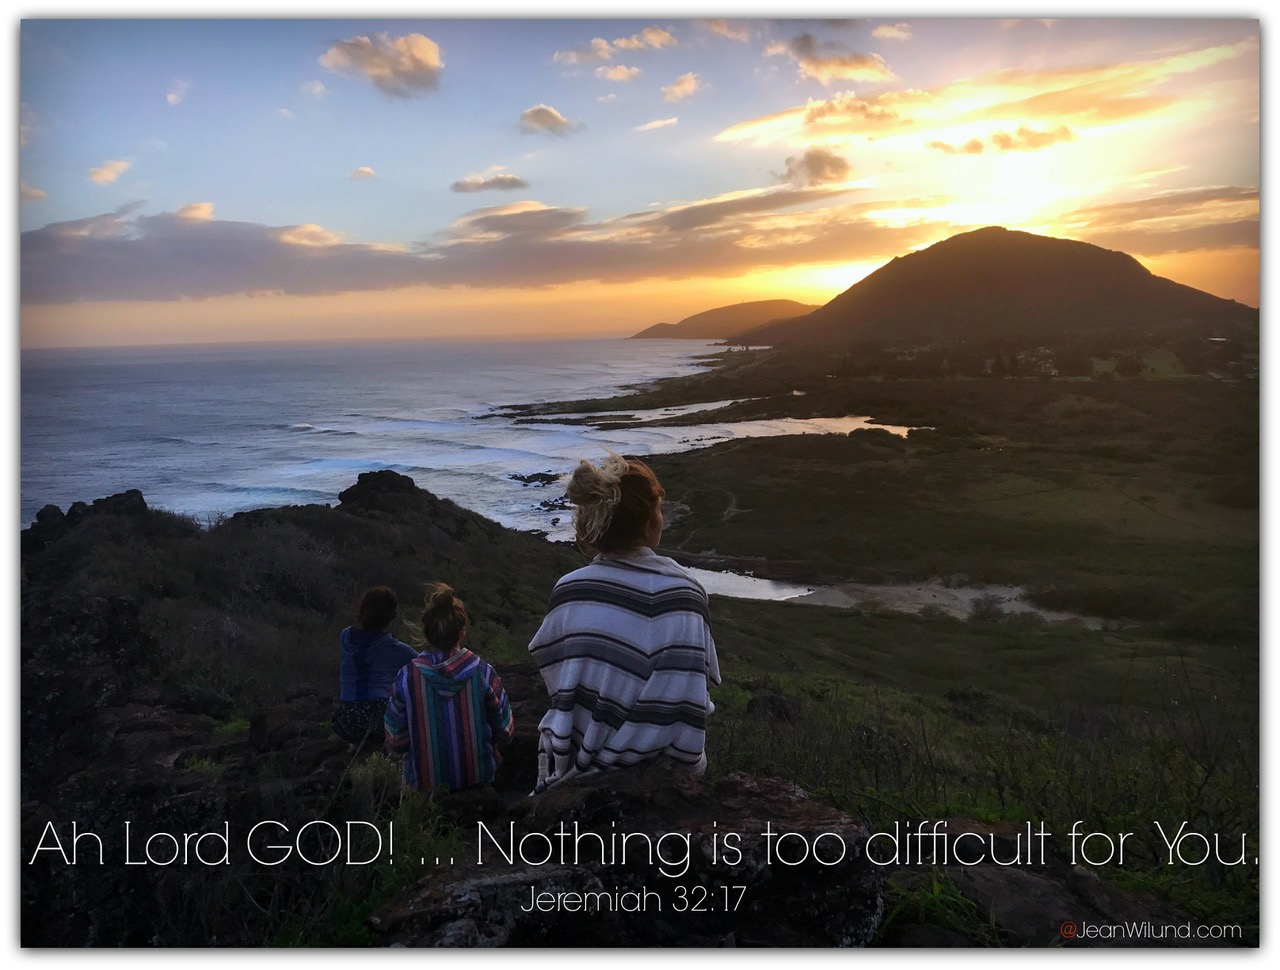 Ah Lord God! Nothing is too difficult for You. That's our hope, joy and promise (Jeremiah 32:17) Praise Picture for the New Year (via www.JeanWilund.com)